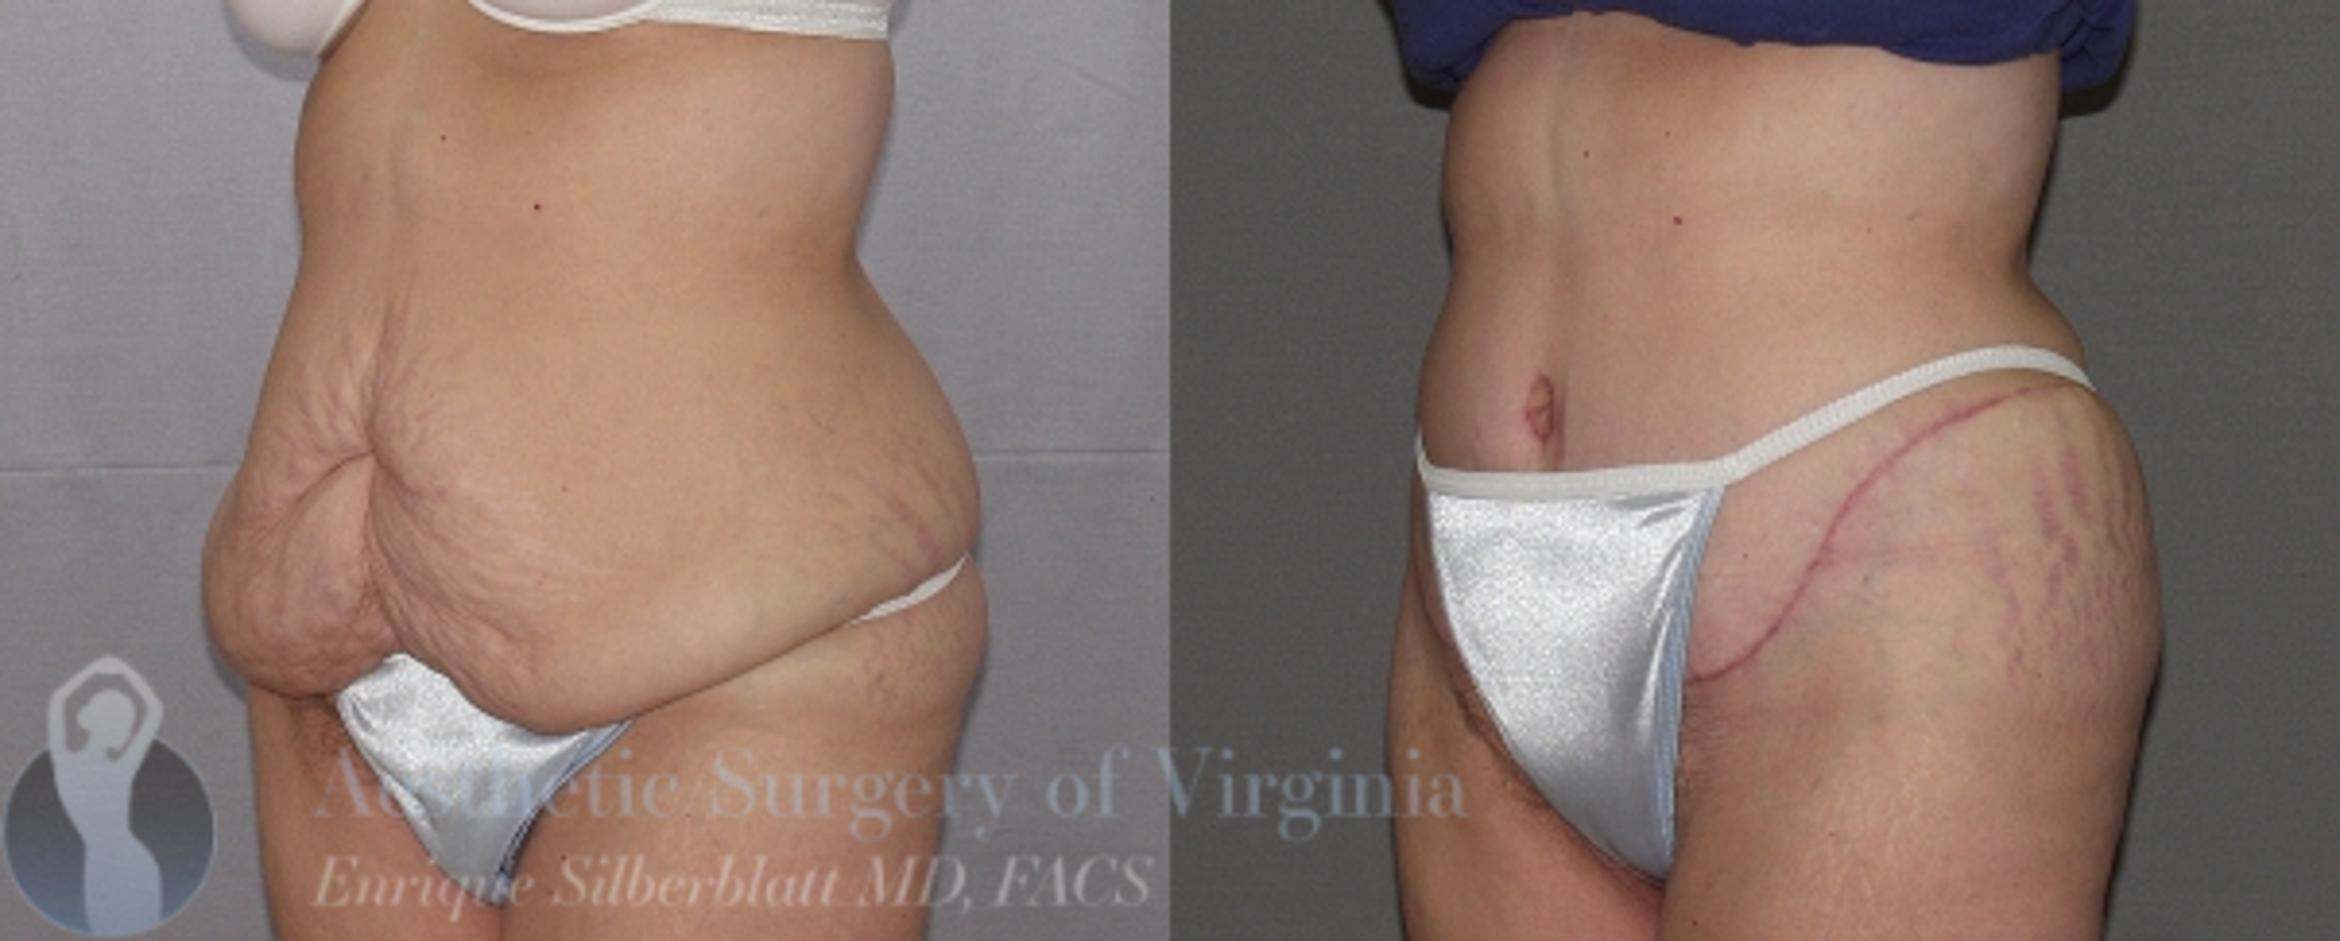 Tummy Tuck Case 25 Before & After View #2 | Roanoke, VA | Aesthetic Surgery of Virginia: Enrique Silberblatt, MD